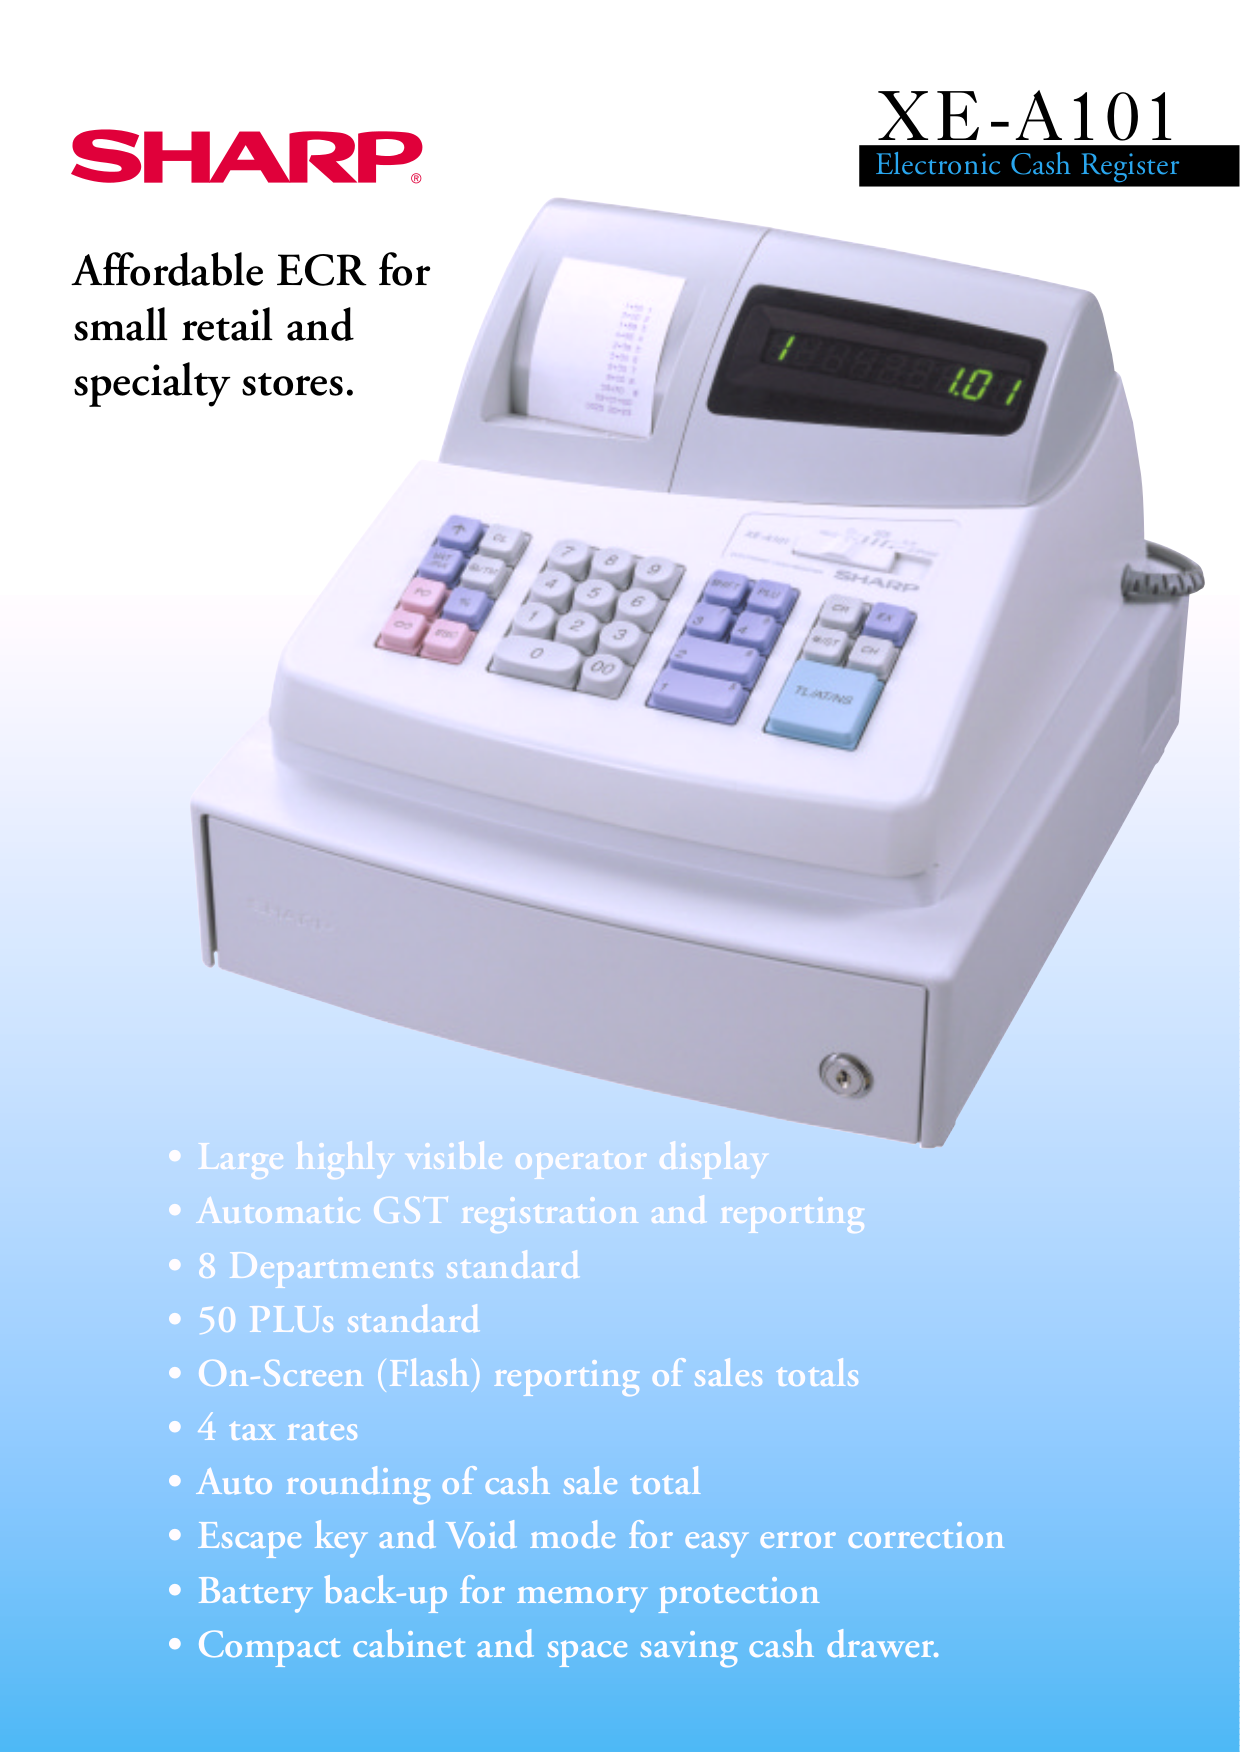 download free pdf for sharp xe a101 cash register other manual rh umlib com sharp xe-a101 manual pdf electronic cash register sharp xe a101 manual